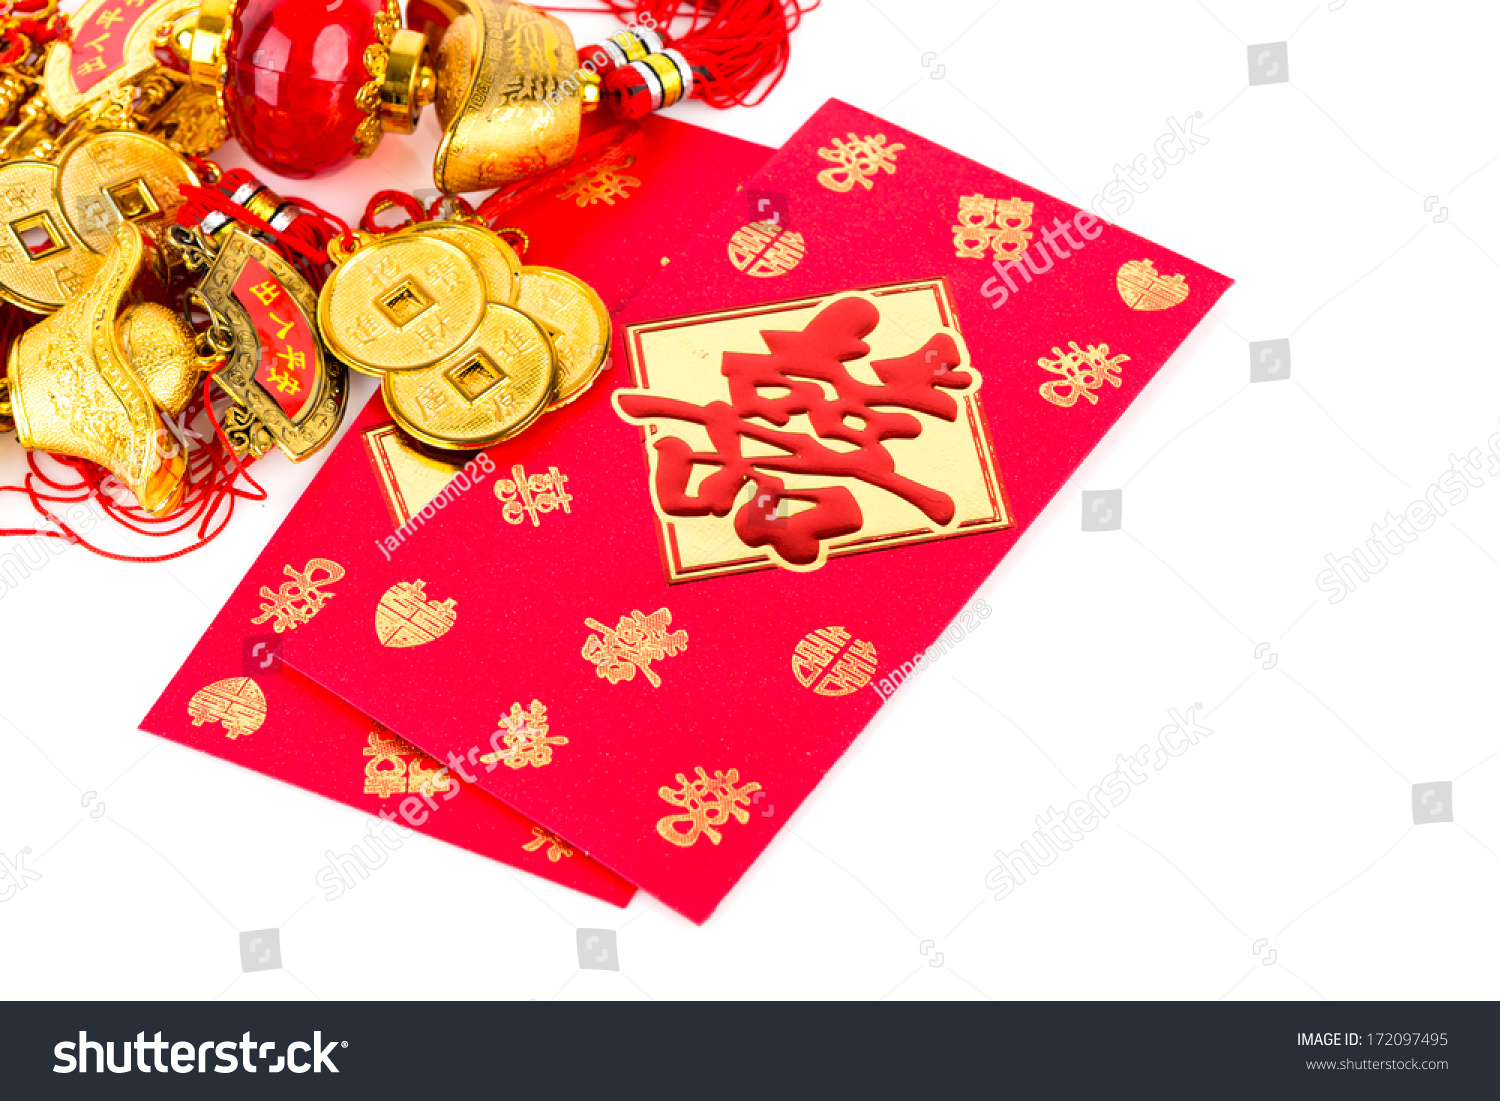 Chinese New Year Decoration Red Packet Stock Photo ...